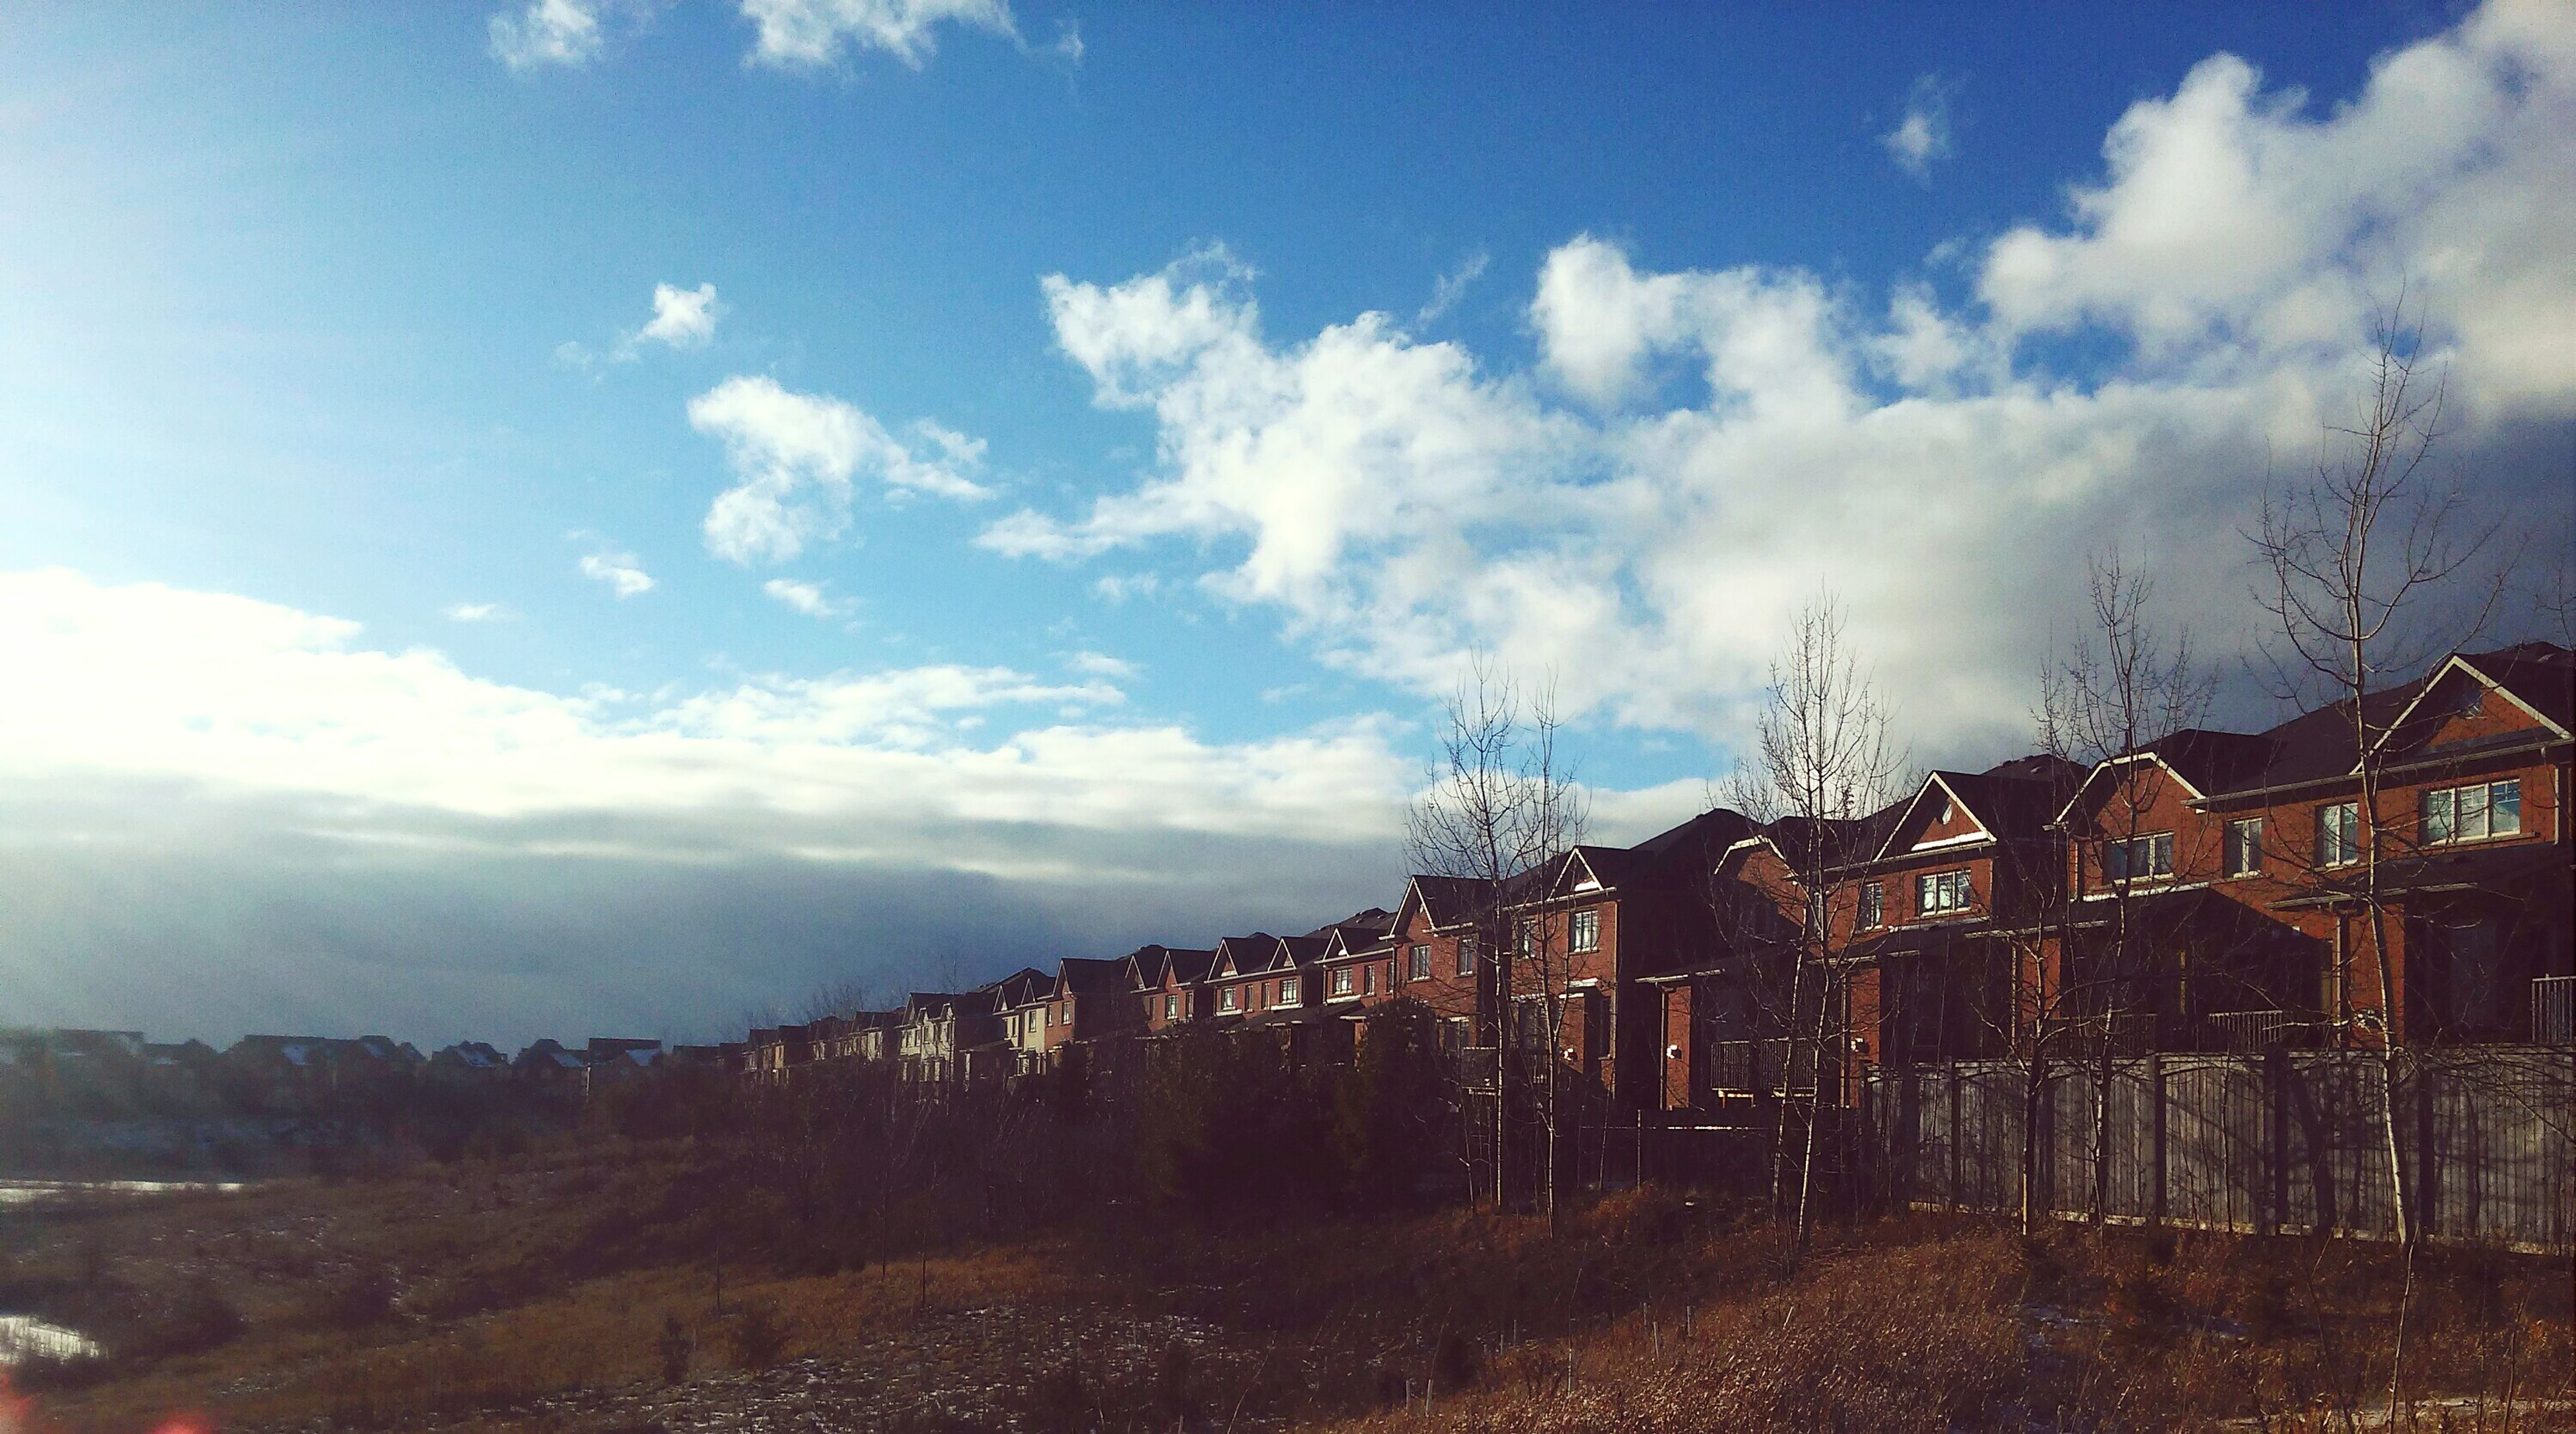 sky, built structure, architecture, building exterior, cloud - sky, house, tree, the way forward, cloud, landscape, field, residential structure, nature, road, cloudy, dirt road, day, fence, tranquility, outdoors